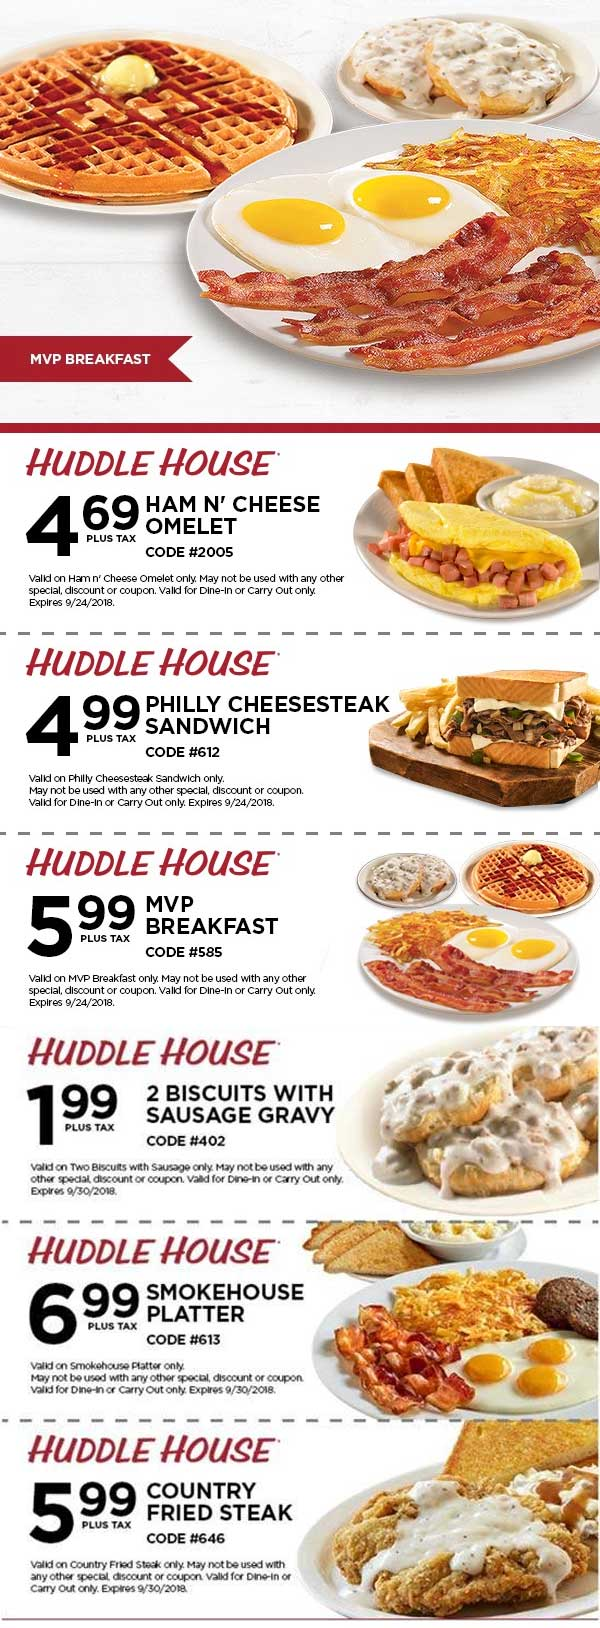 Huddle House Coupon November 2019 $6 MVP breakfast & more at Huddle House